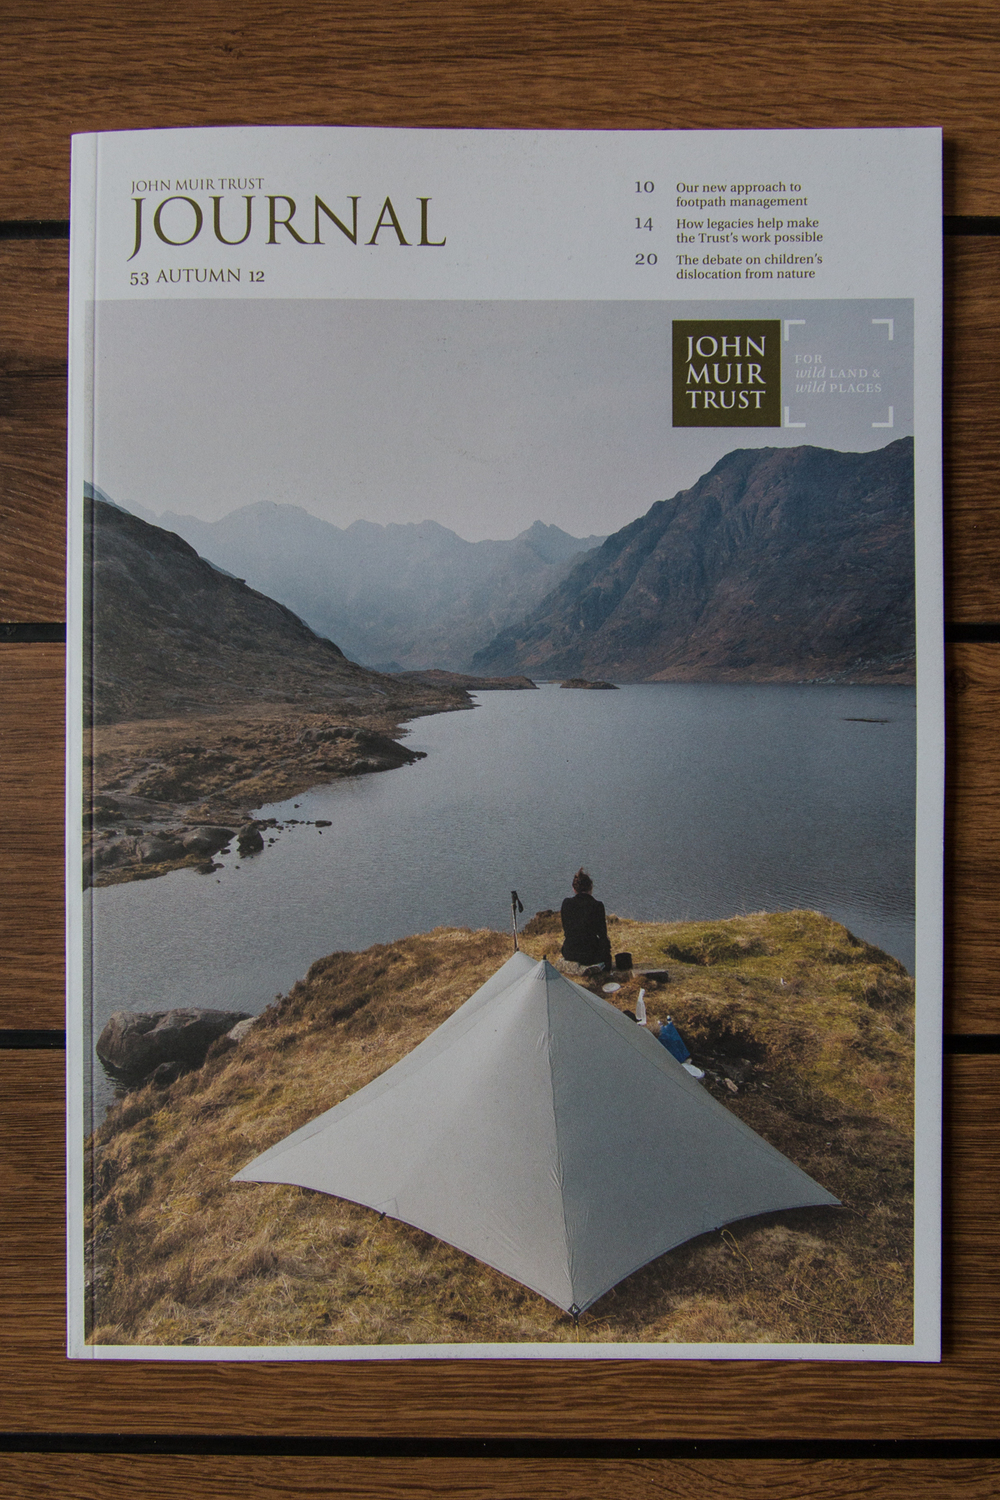 John Muir Trust Journal: cover